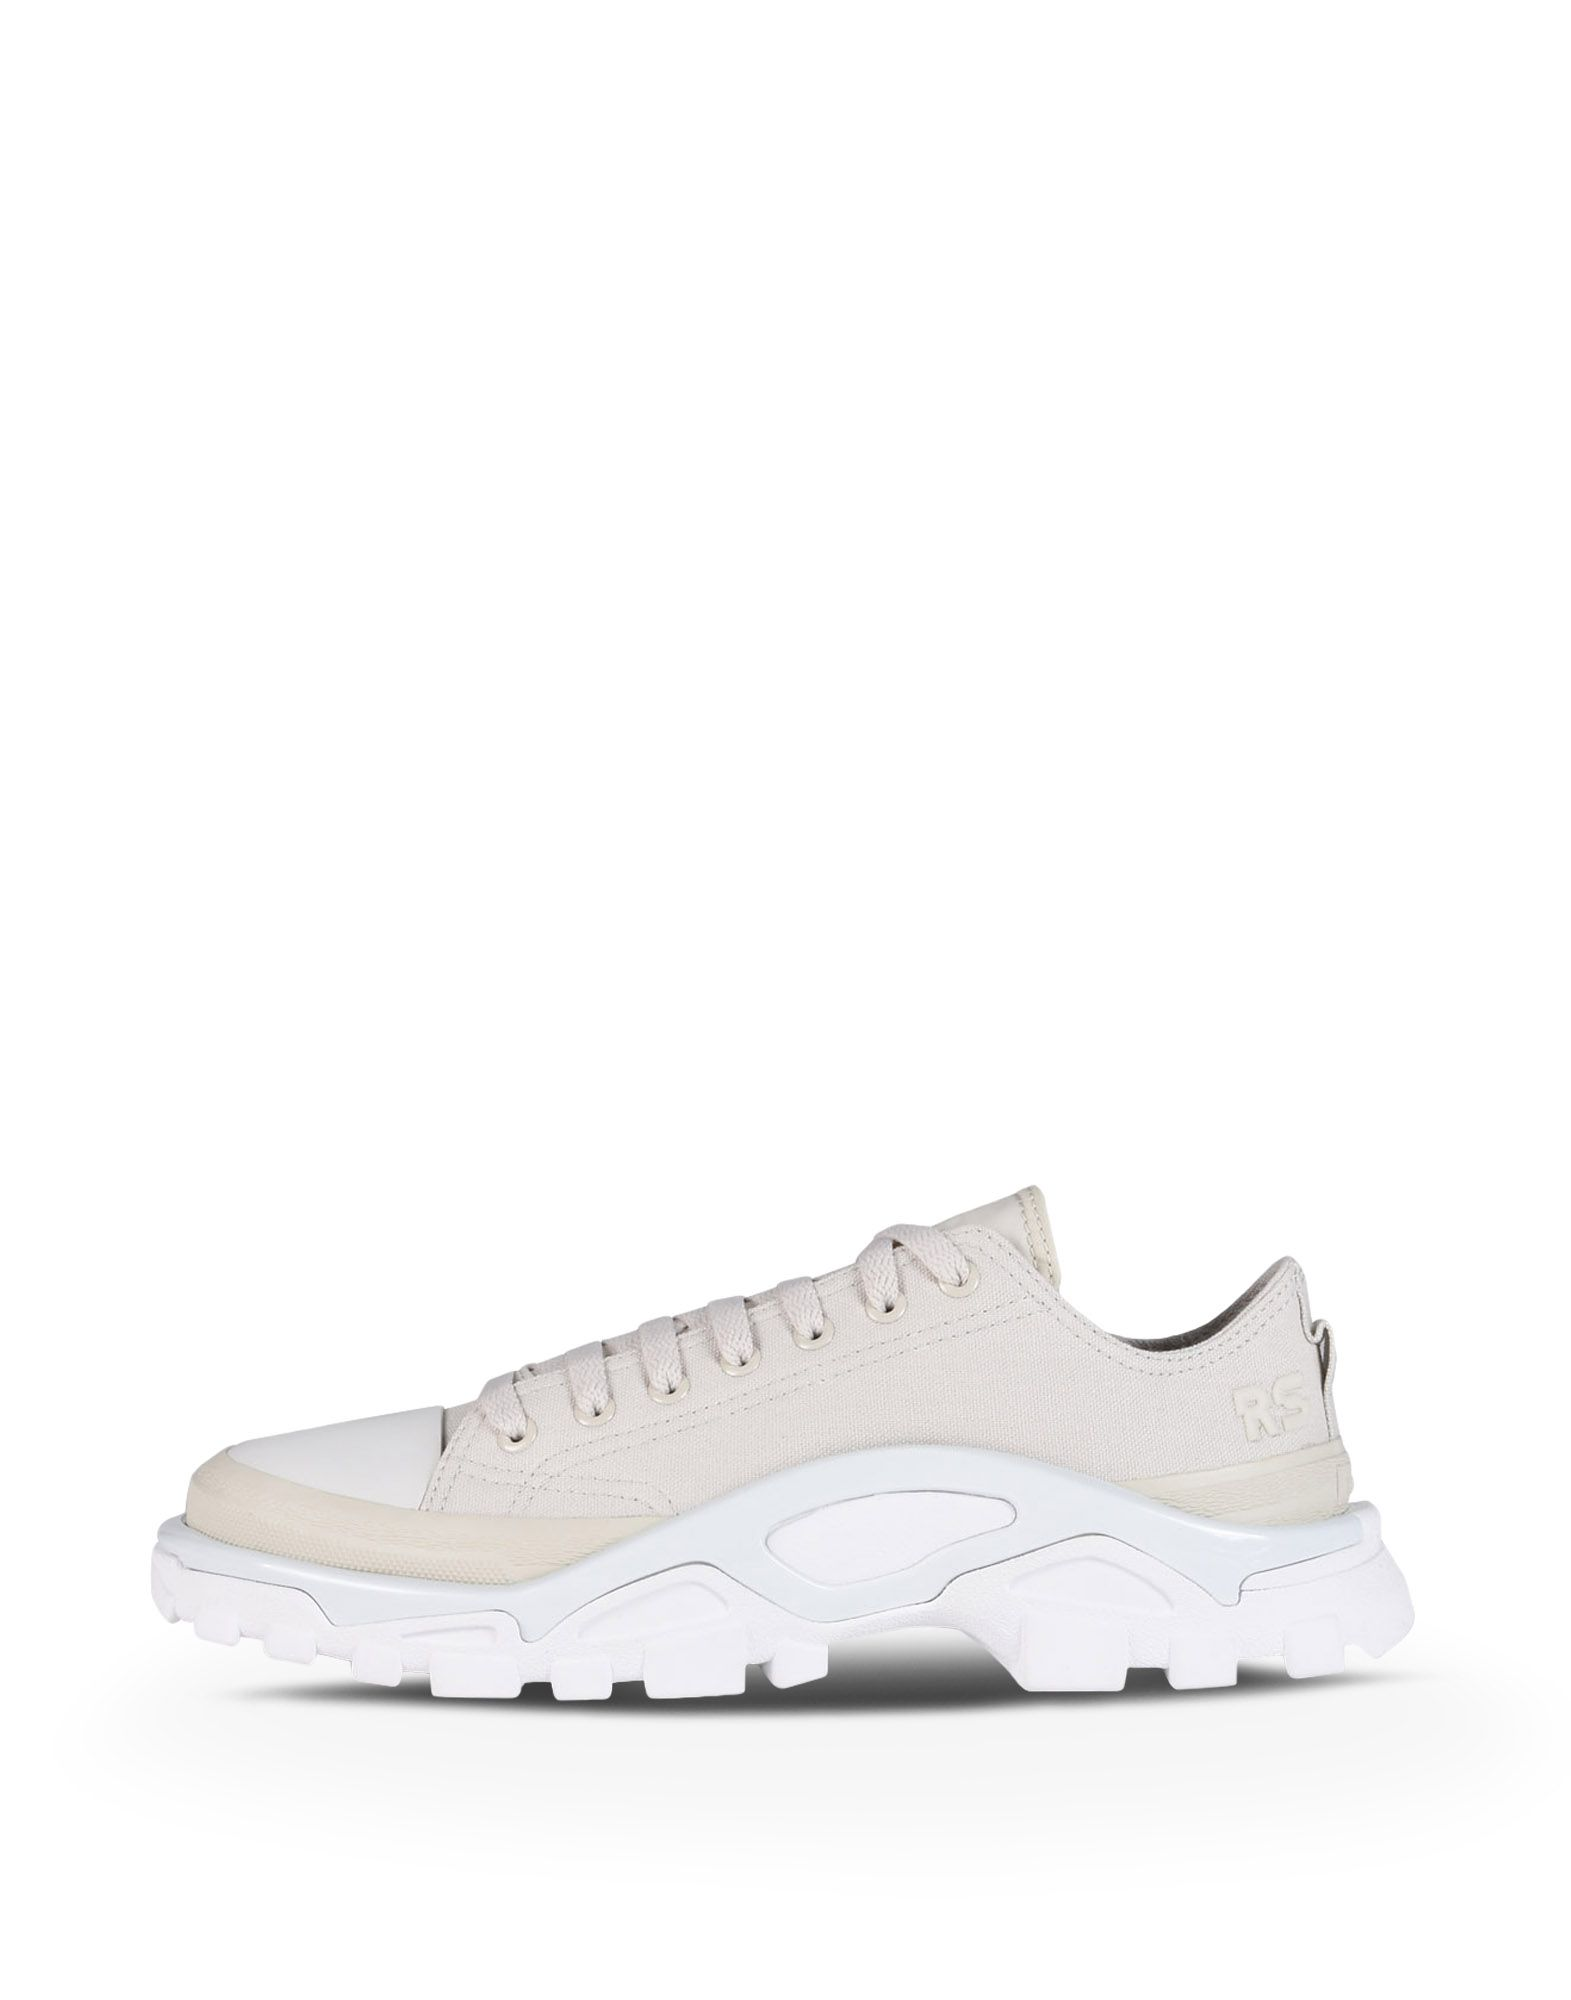 official photos 48e0a 12718 ... RAF SIMONS RAF SIMONS DETROIT RUNNER Sneakers Man f ...